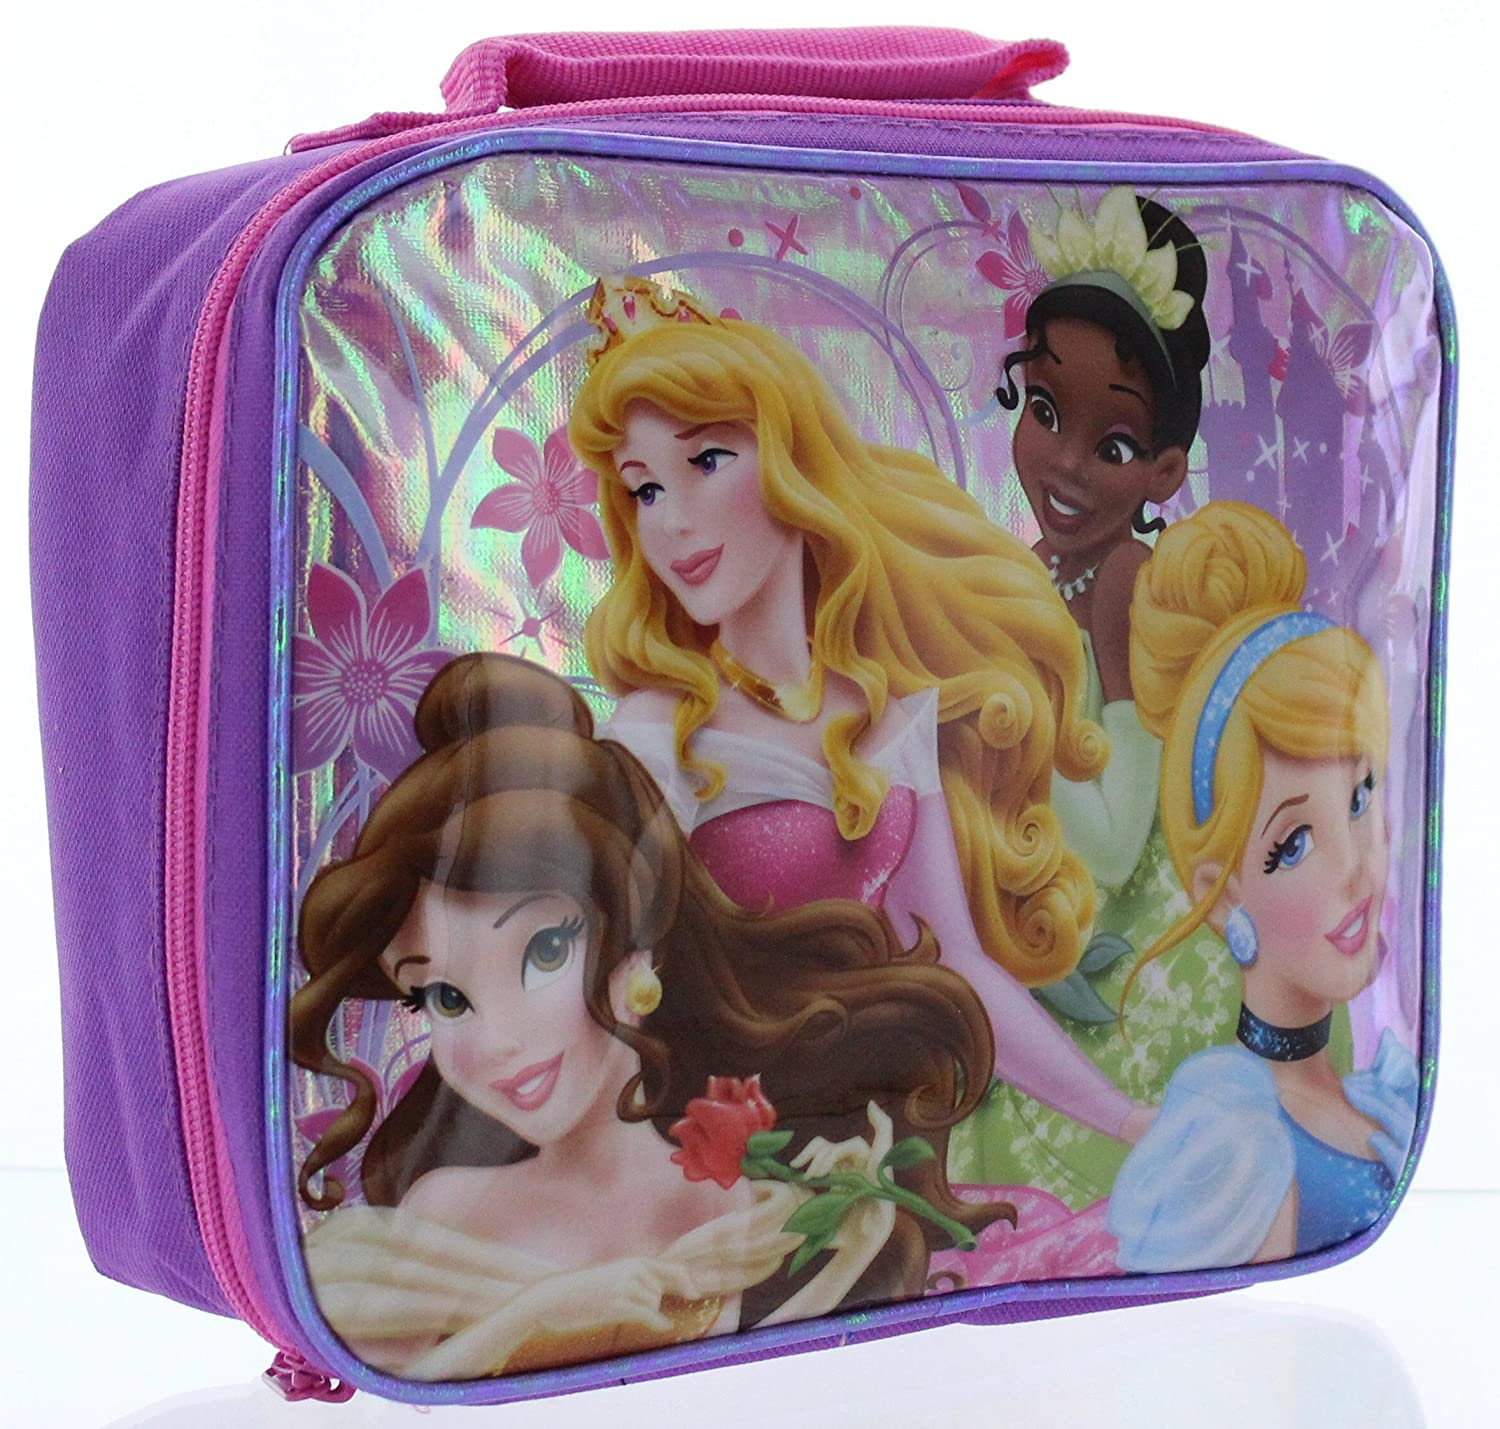 650c759440a1 Disney Princess Insulated Lunch Bag - Lunch Box